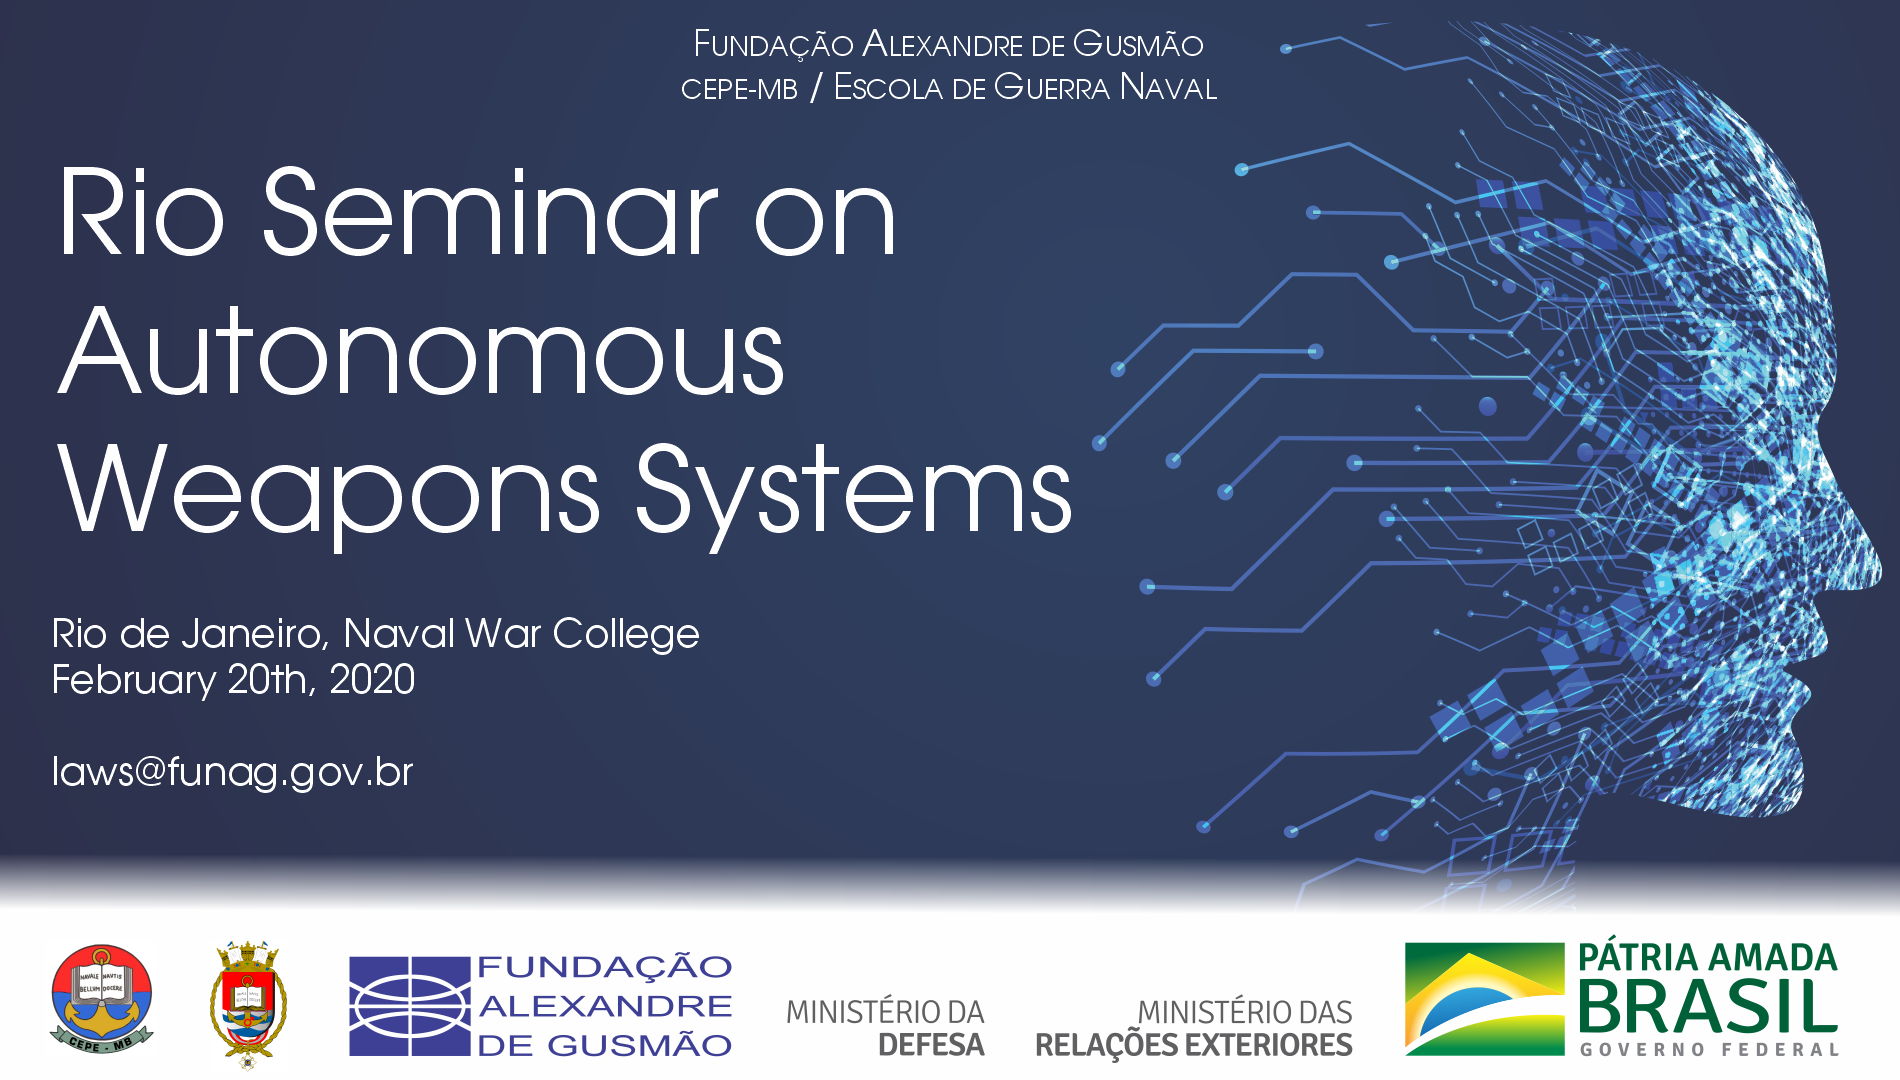 Rio Seminar on Autonomous Weapons Systems